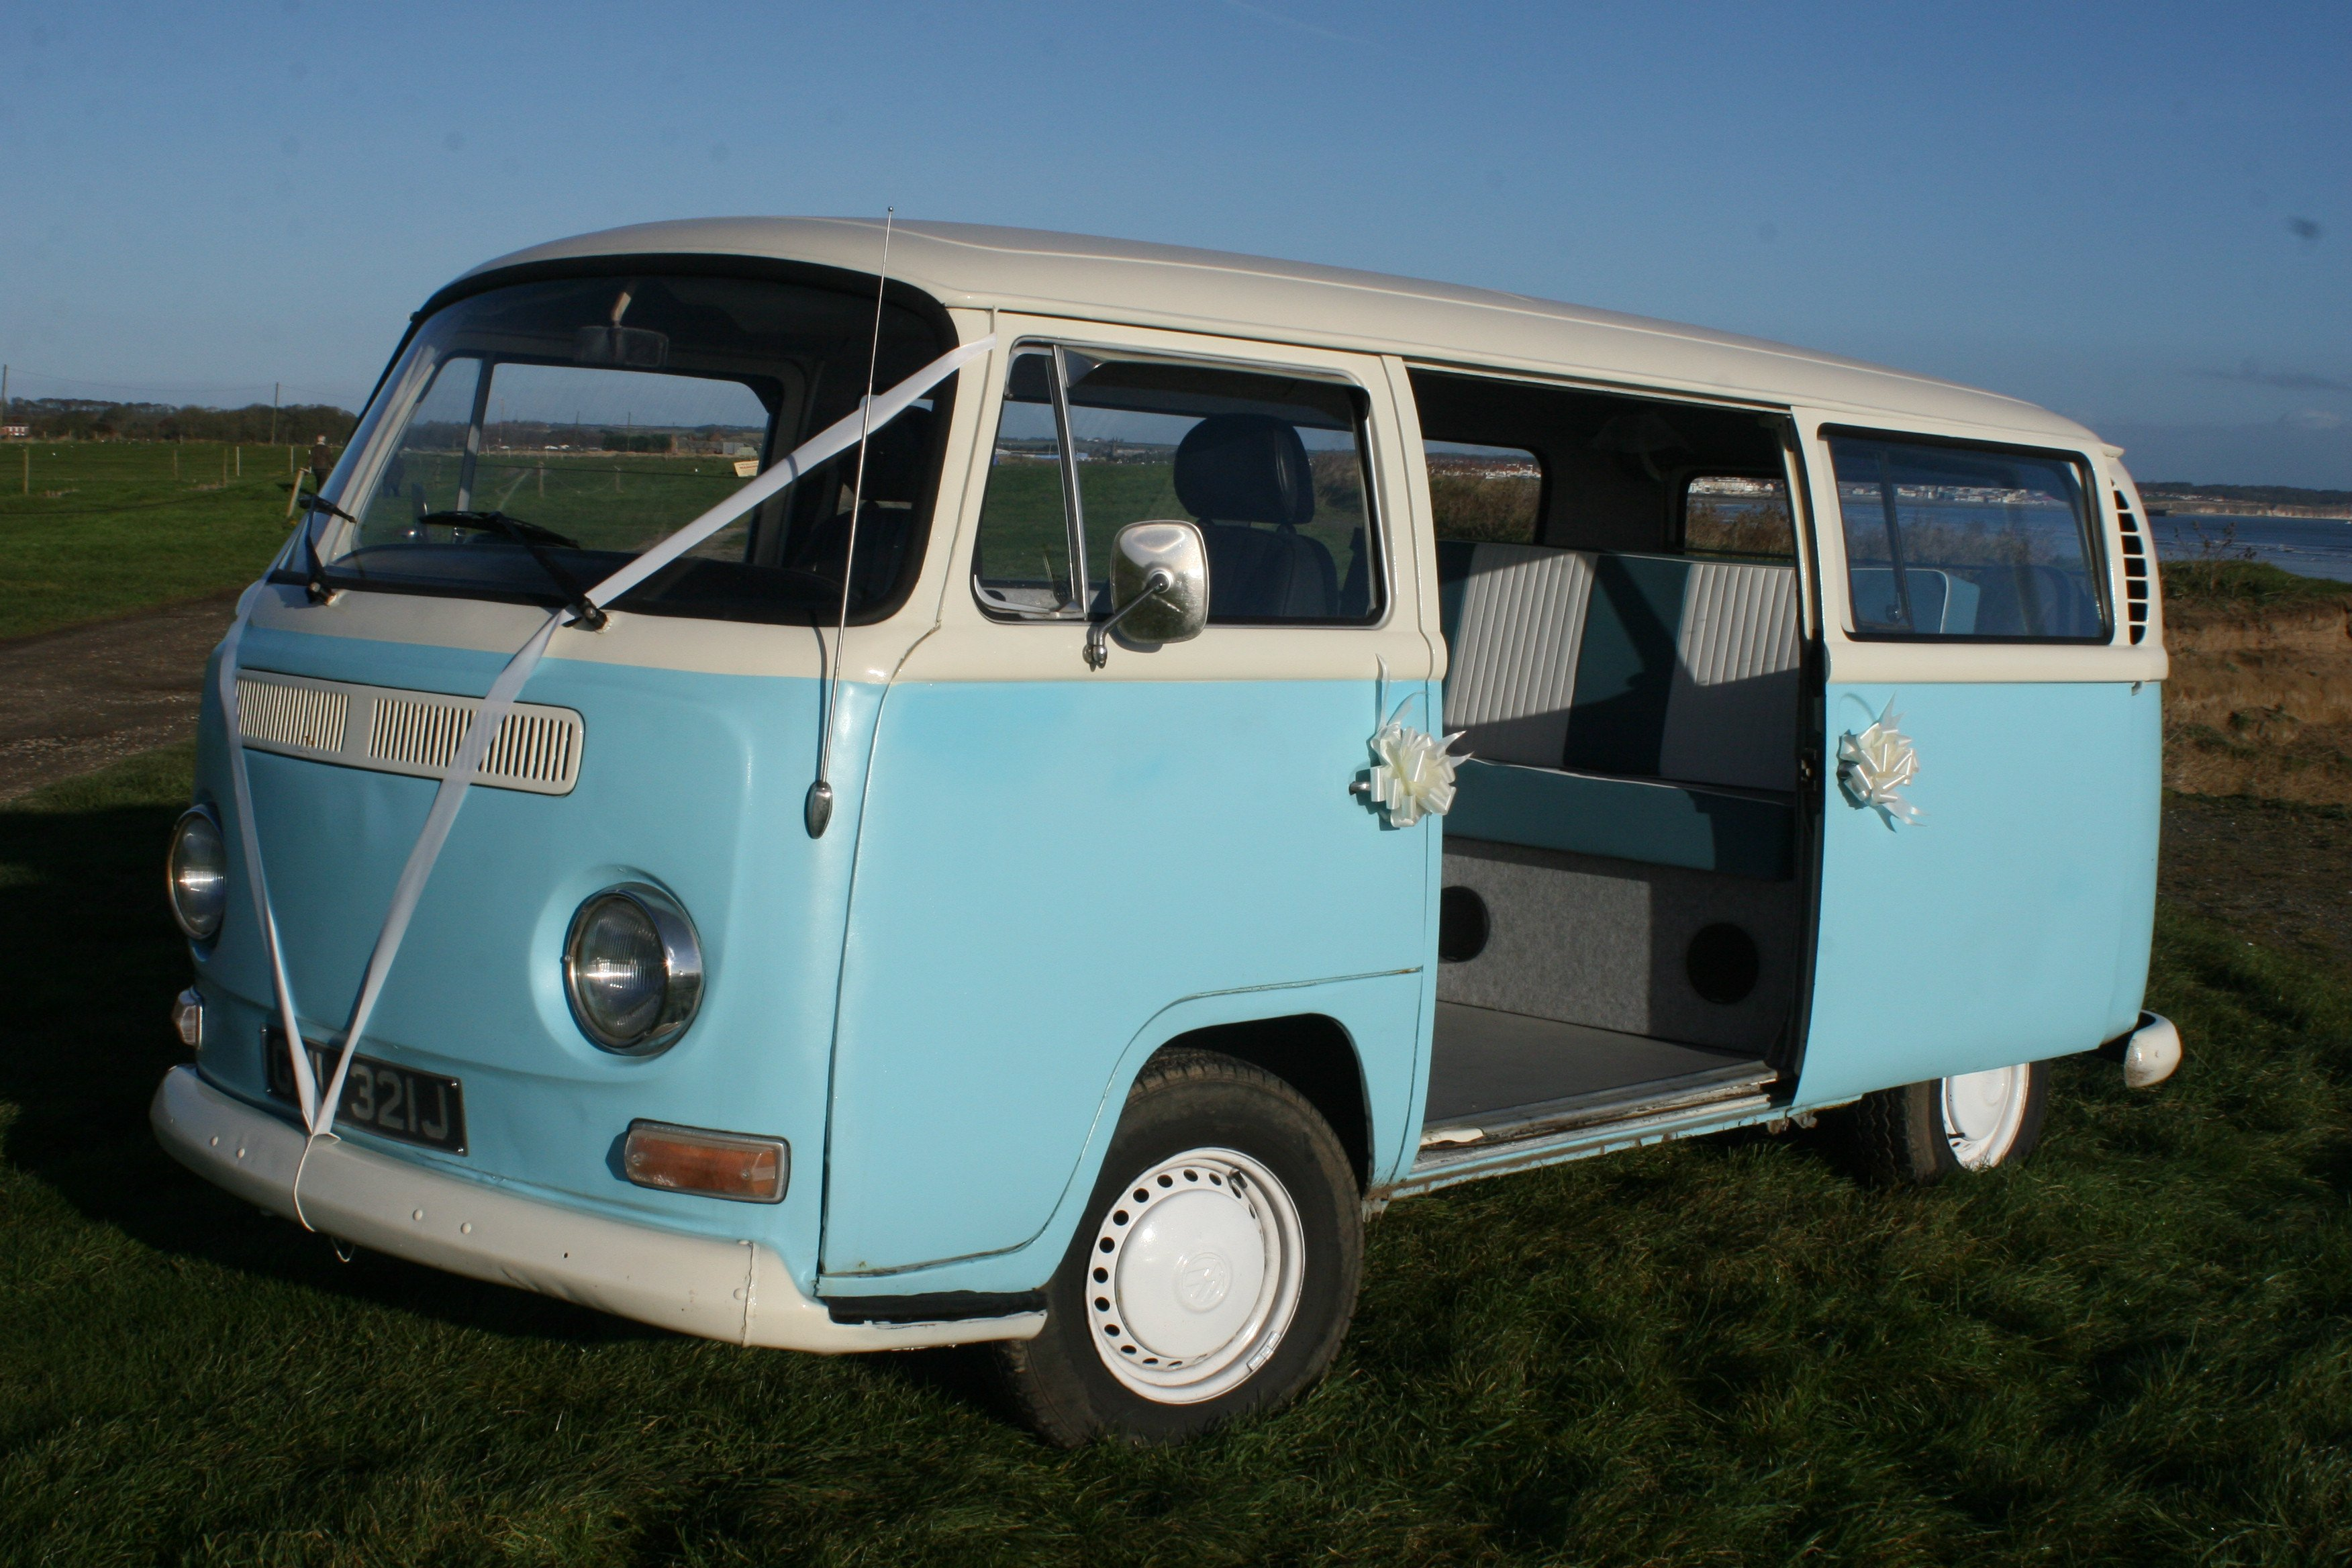 1971 VW Camper from East Riding Vintage Wedding Car Hire